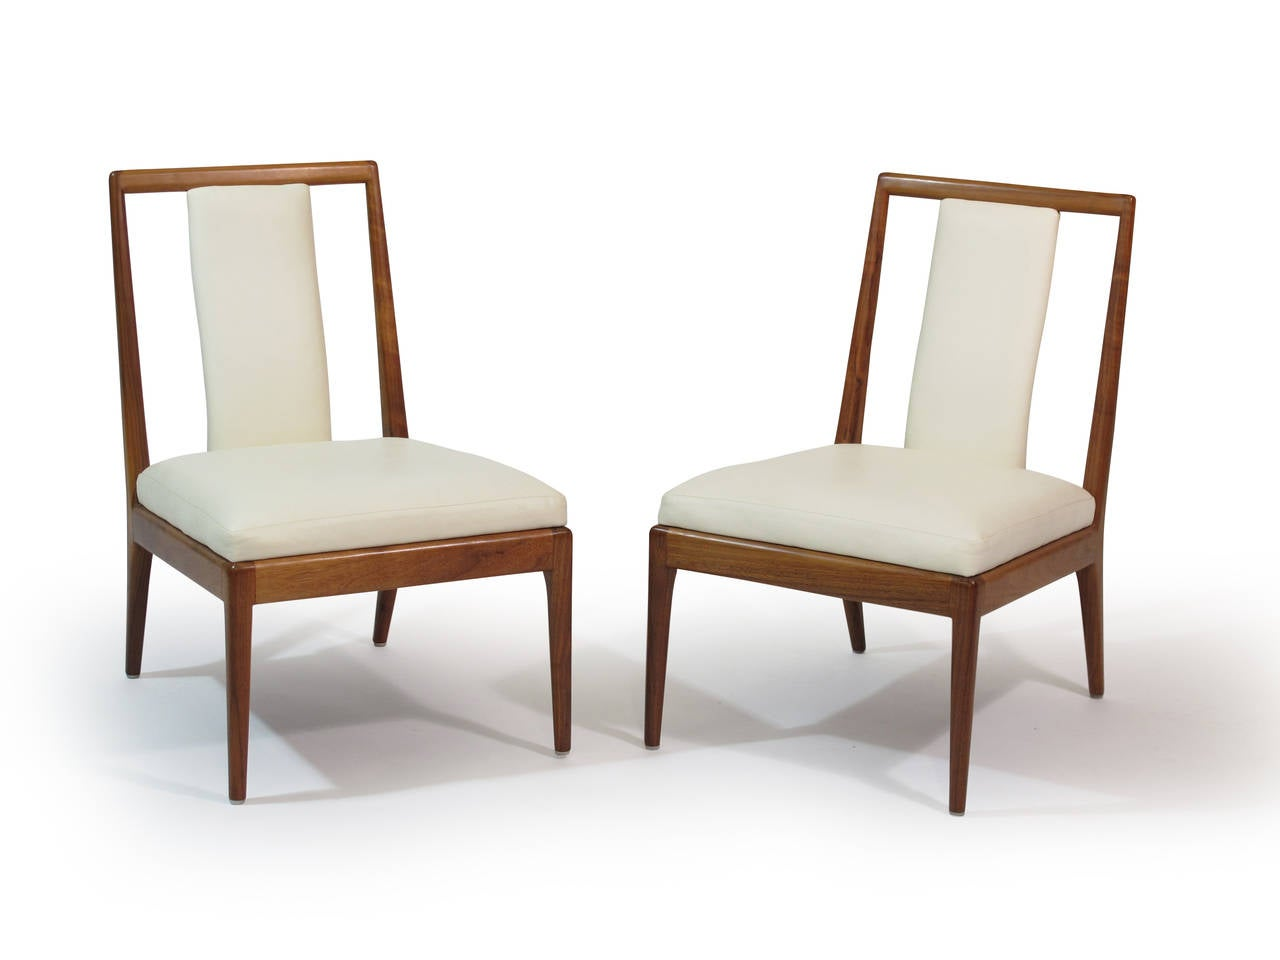 white leather slipper chair desk pillow walnut chairs for sale at 1stdibs